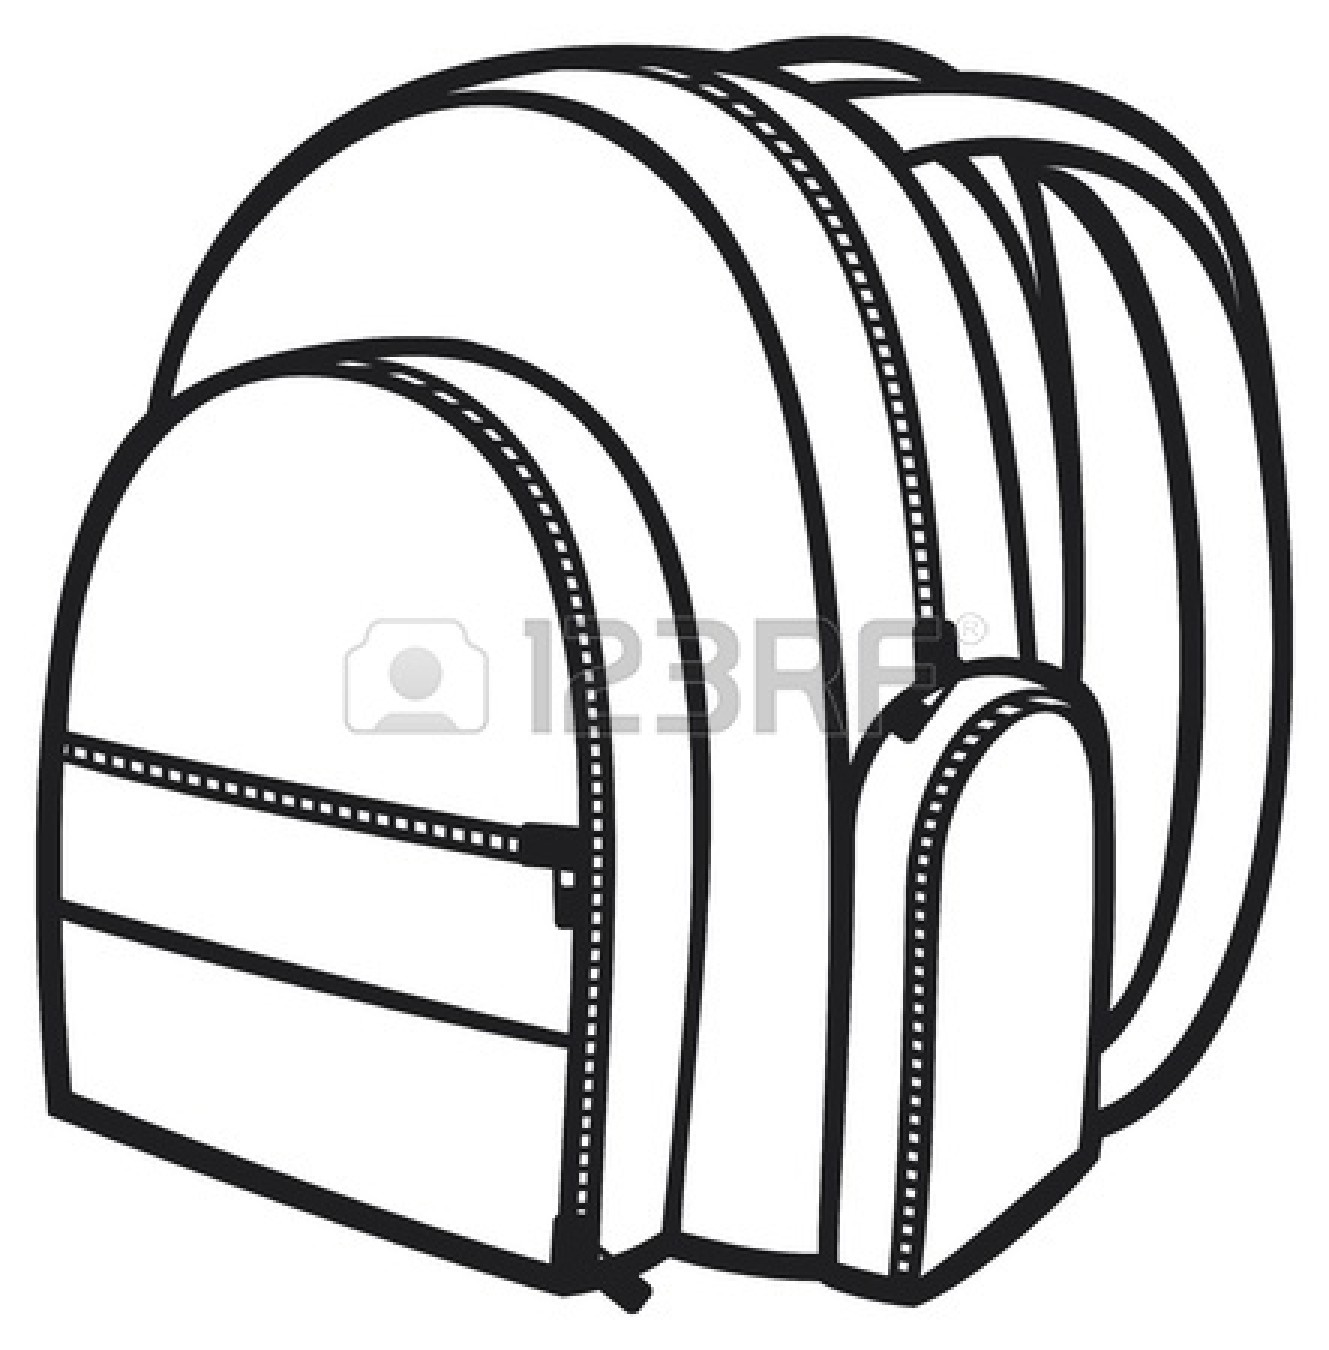 Bags clipart black and white 1 » Clipart Station.